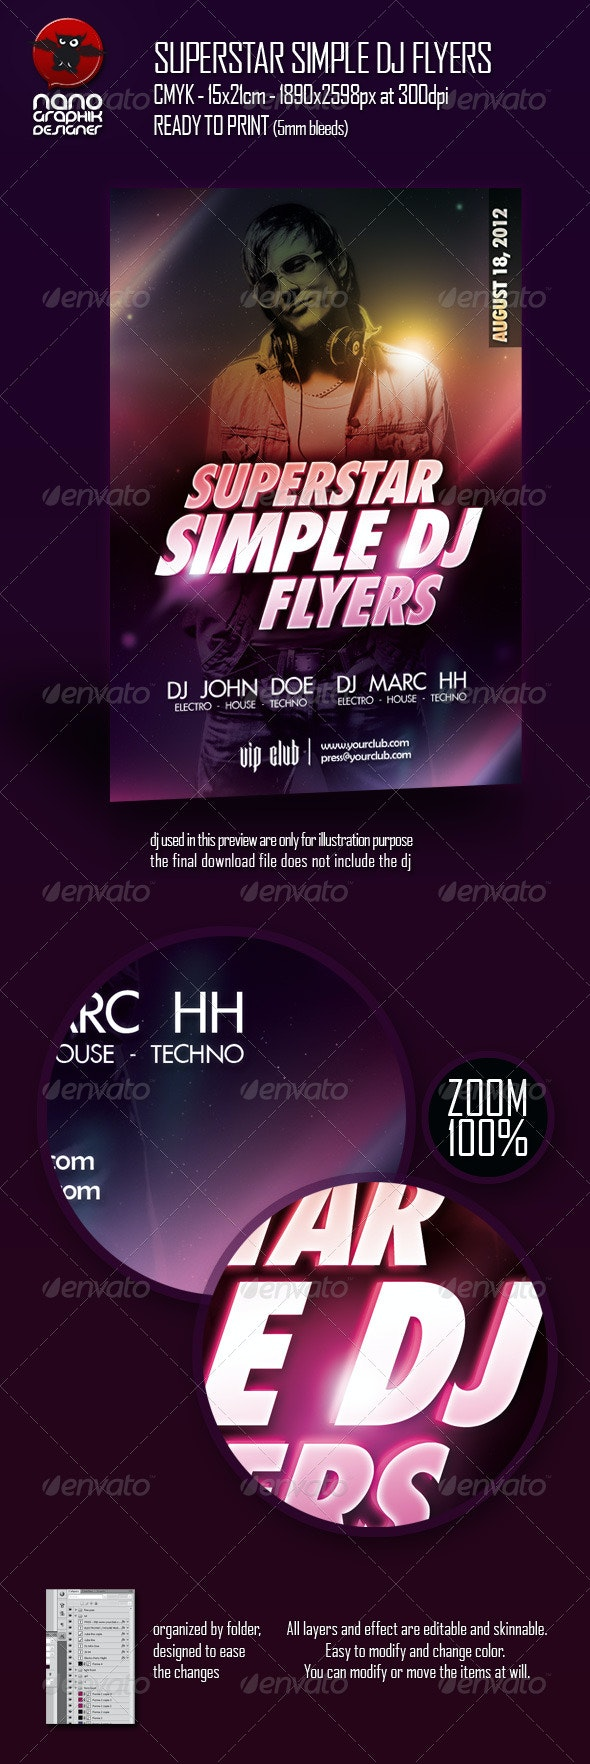 Superstar Simple DJ Flyers - Clubs & Parties Events